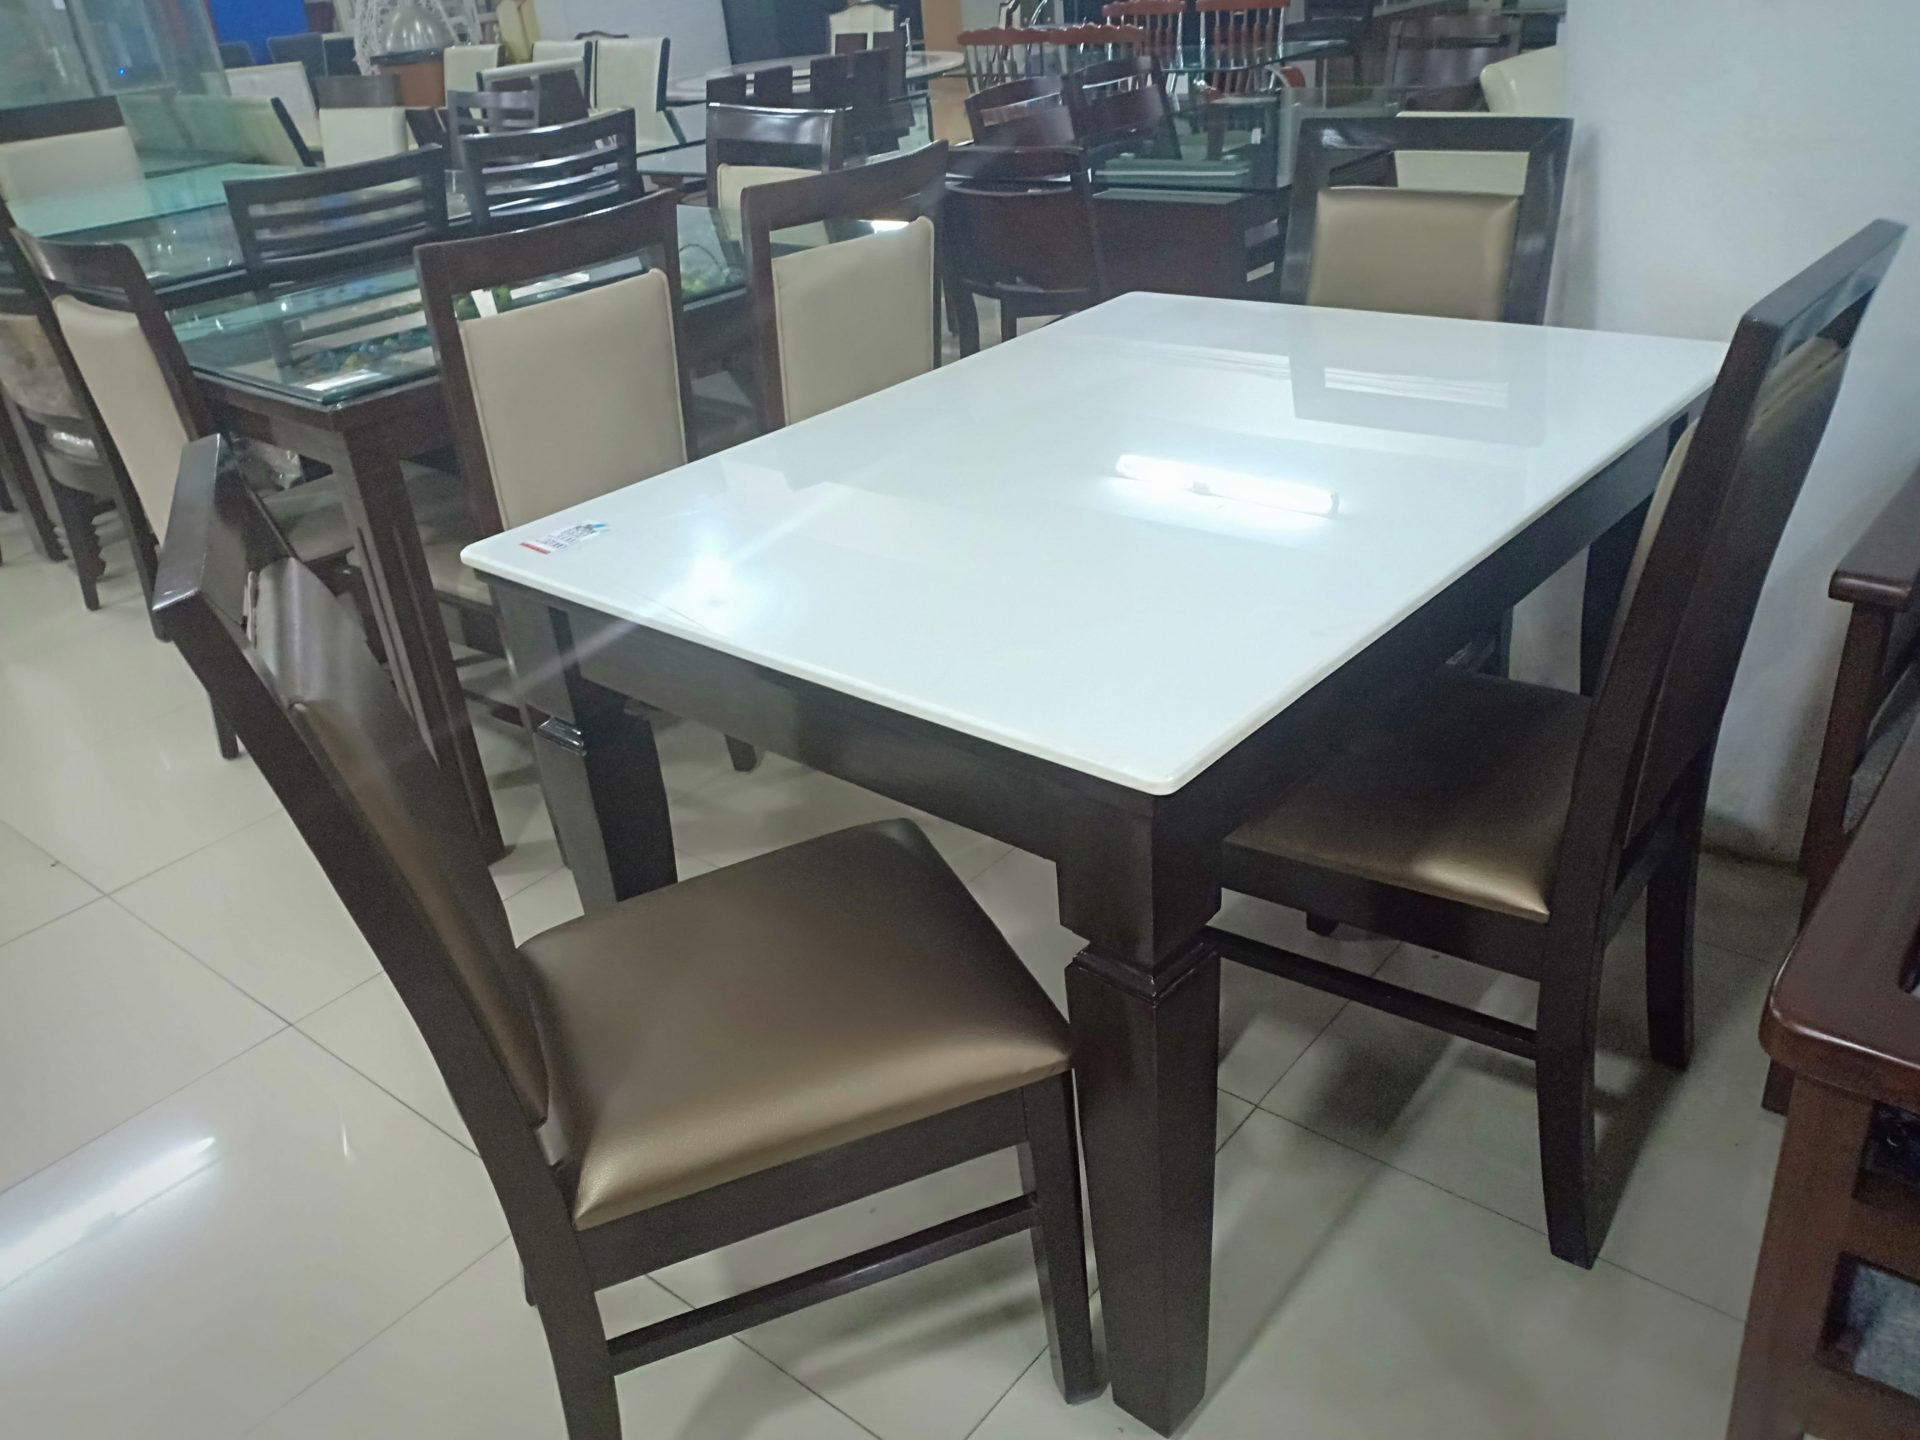 Hilton Dining Set Betterhomeindia Indian Wooden Dining Set Ahmedabad Marble Top Dining Table Ahmedabad Four Seater Dining Set In Ahmedabad Latest Design Dining Set In Ahmedabad